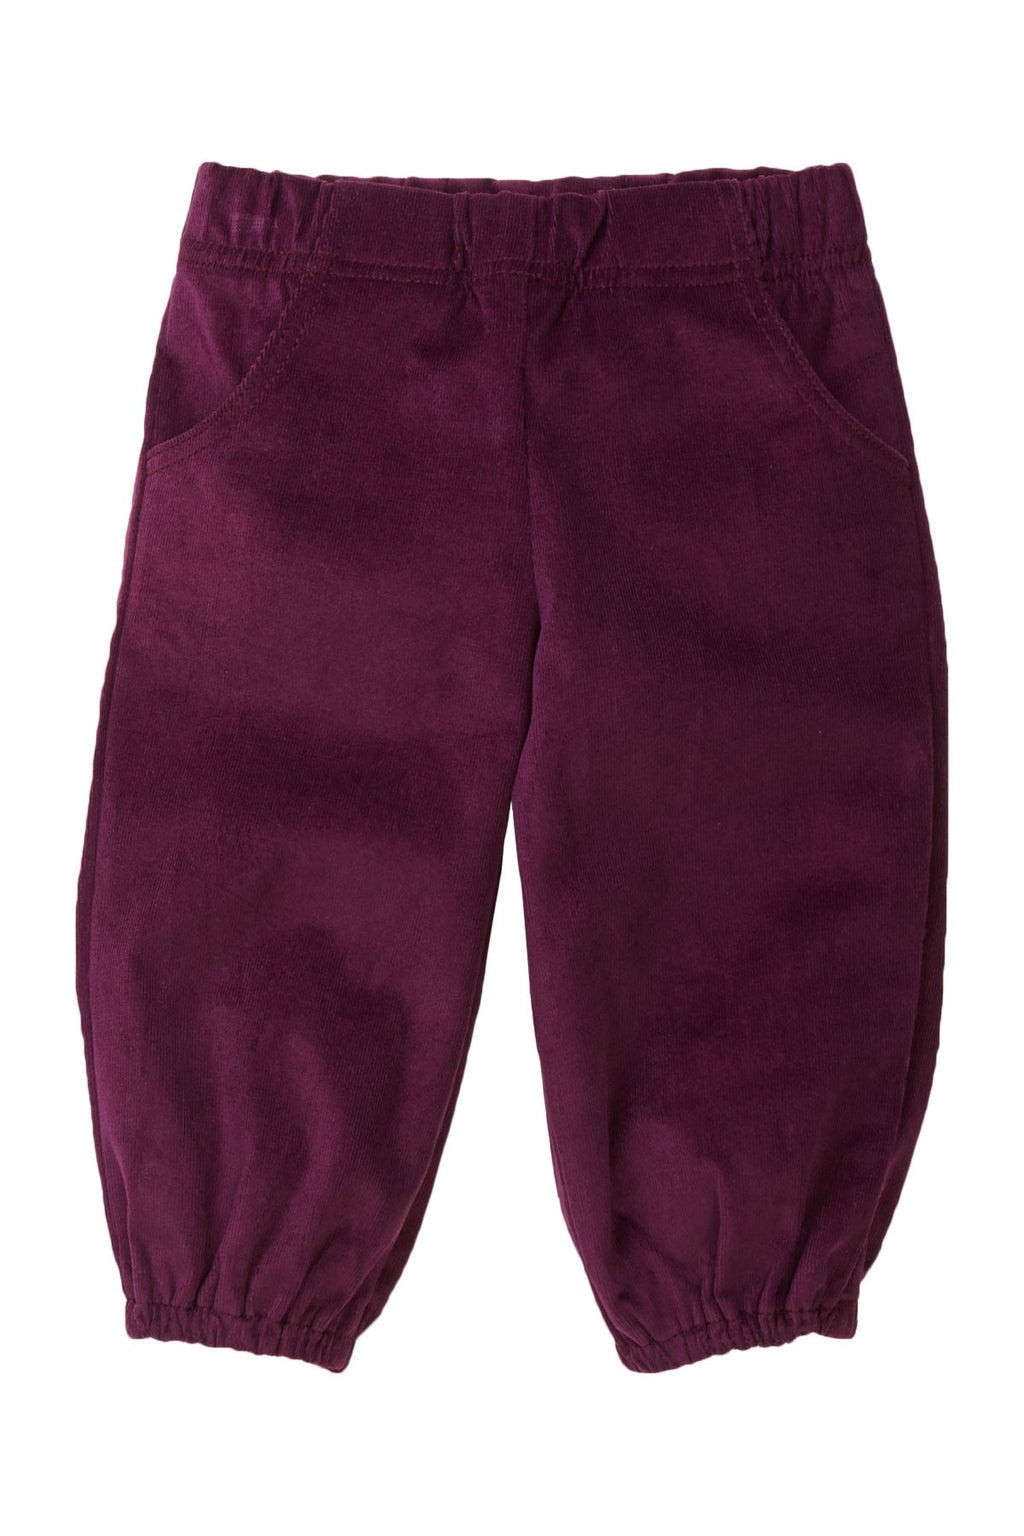 Plum Corduroy Pants